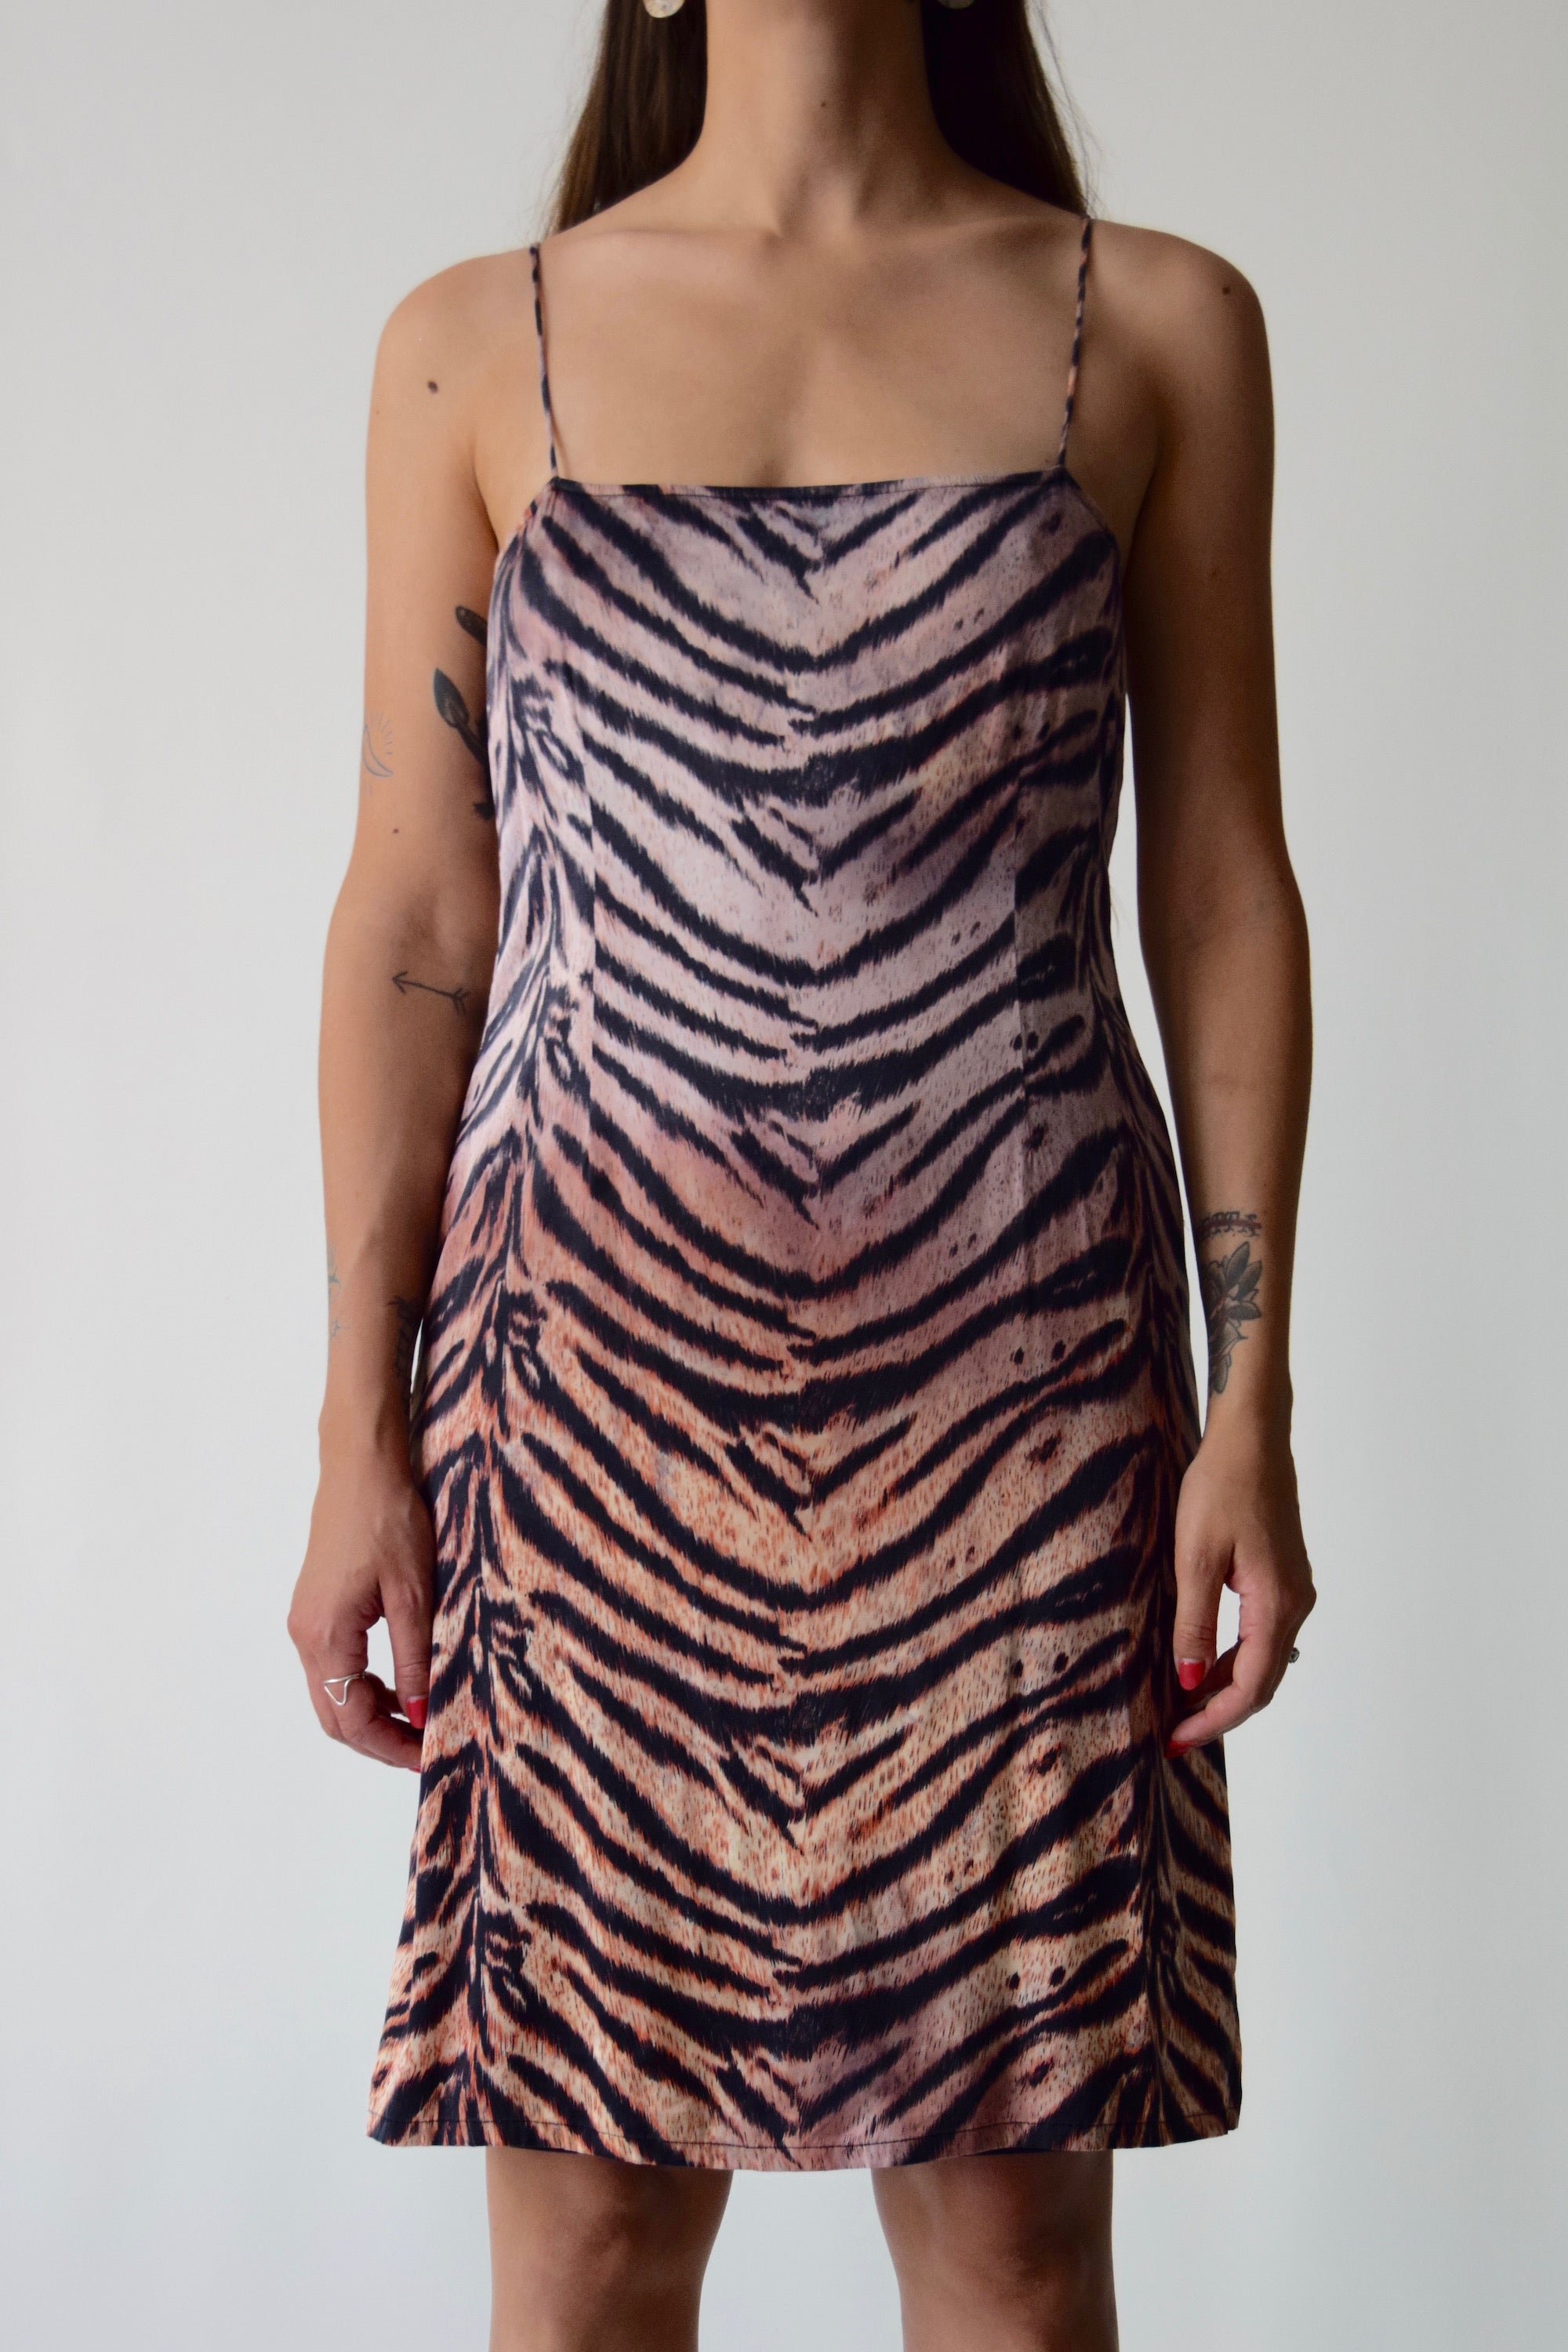 90's Stretchy Silk Ombre Tiger Print Dress